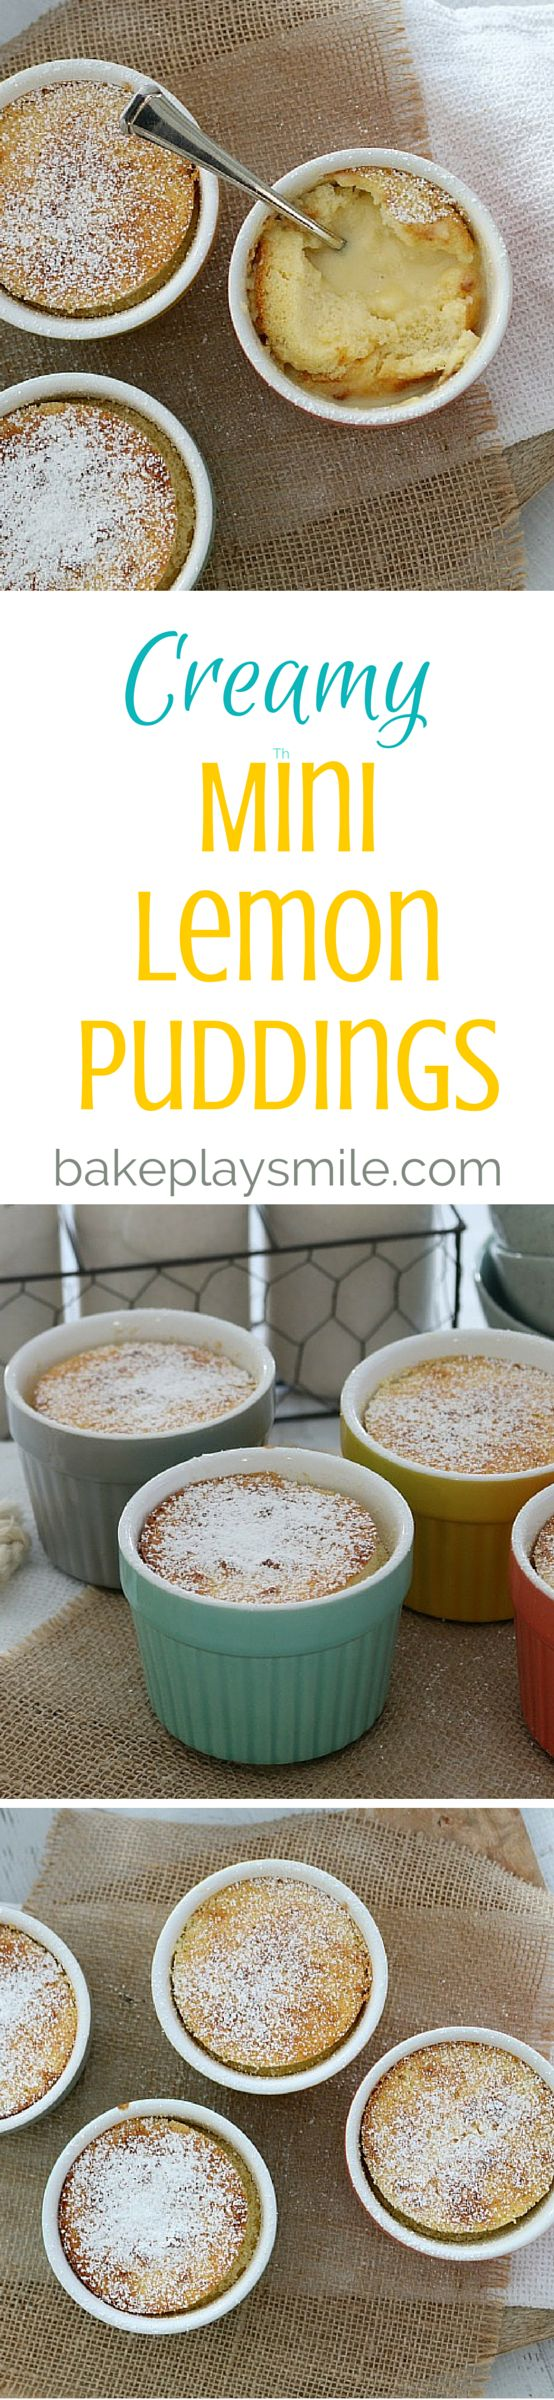 These Thermomix Creamy Mini Lemon Puddings are the ultimate dessert… perfect sponge-like top with a creamy lemon sauce on the bottom! There really is nothing better! #lemon #pudding #creamy #dessert #easy #winter #thermomix #conventional